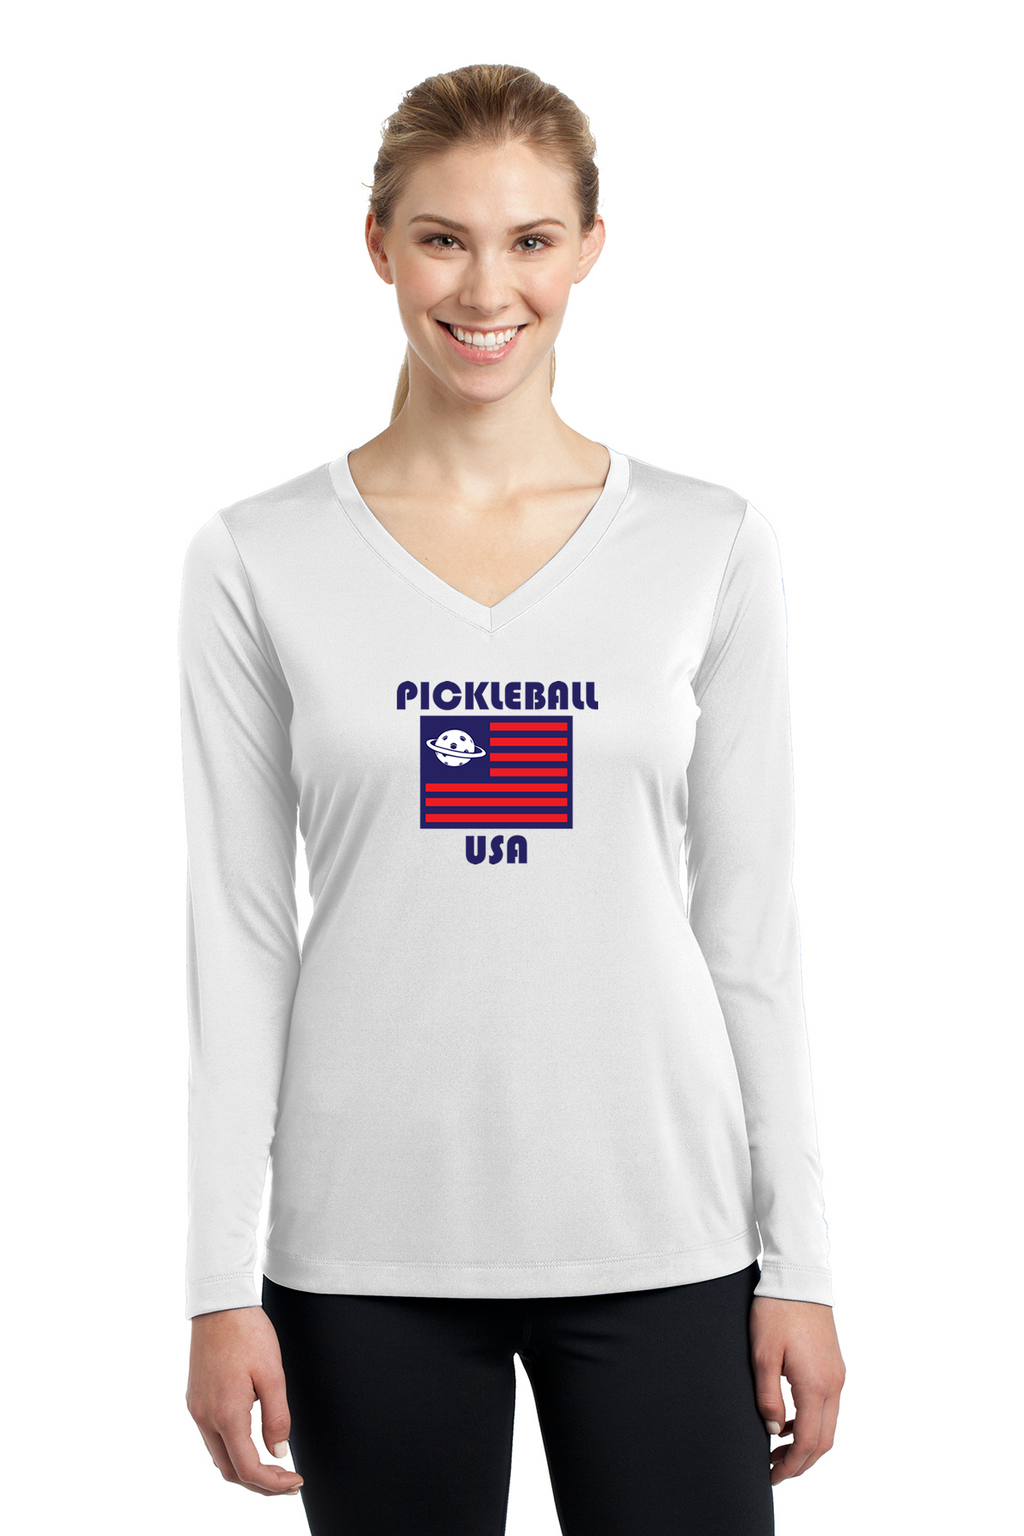 Ladies Long Sleeve V-Neck Performance Shirt 'PB USA'